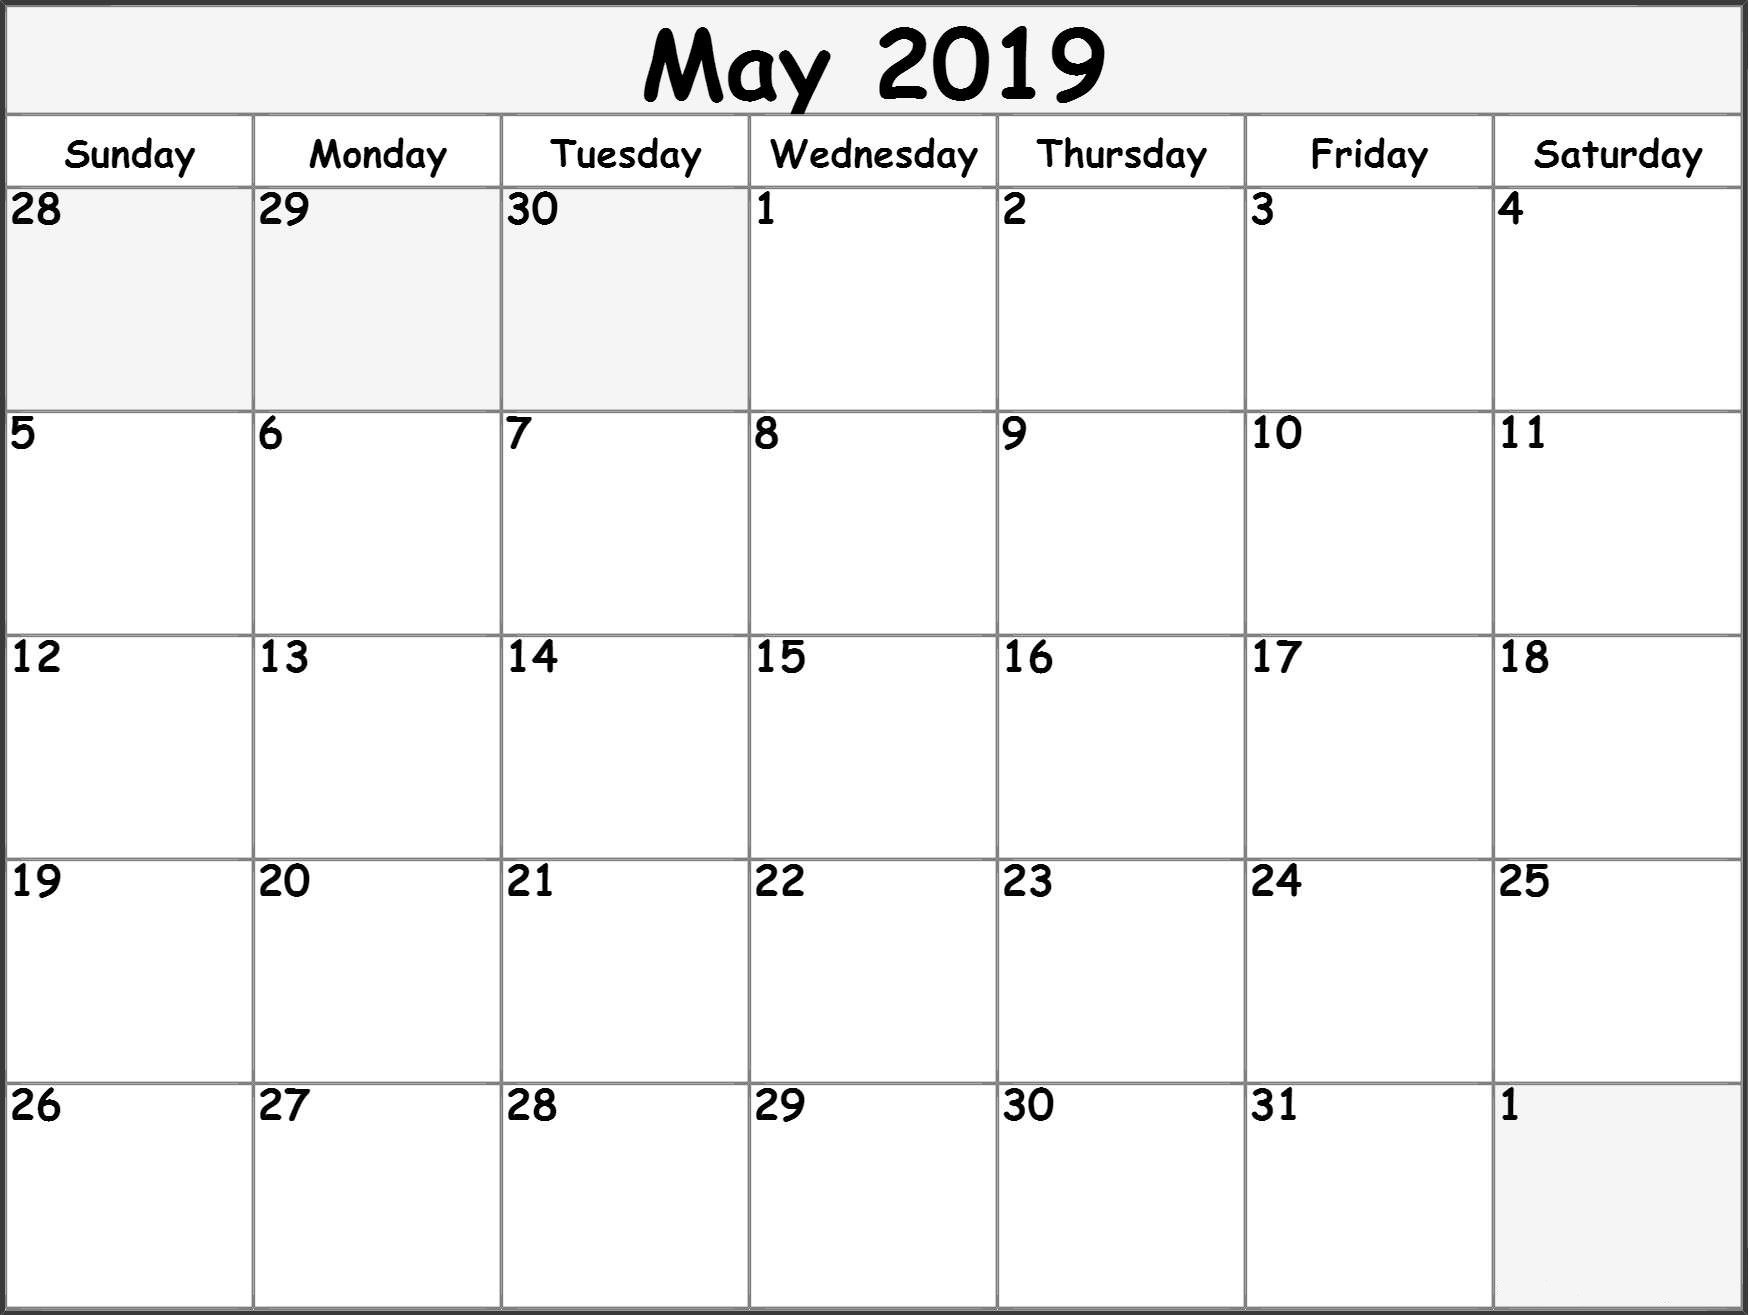 May 2019 Printable Calendar Templates - Free Blank, Pdf, Holidays throughout Free Blank Printable Calendar Template